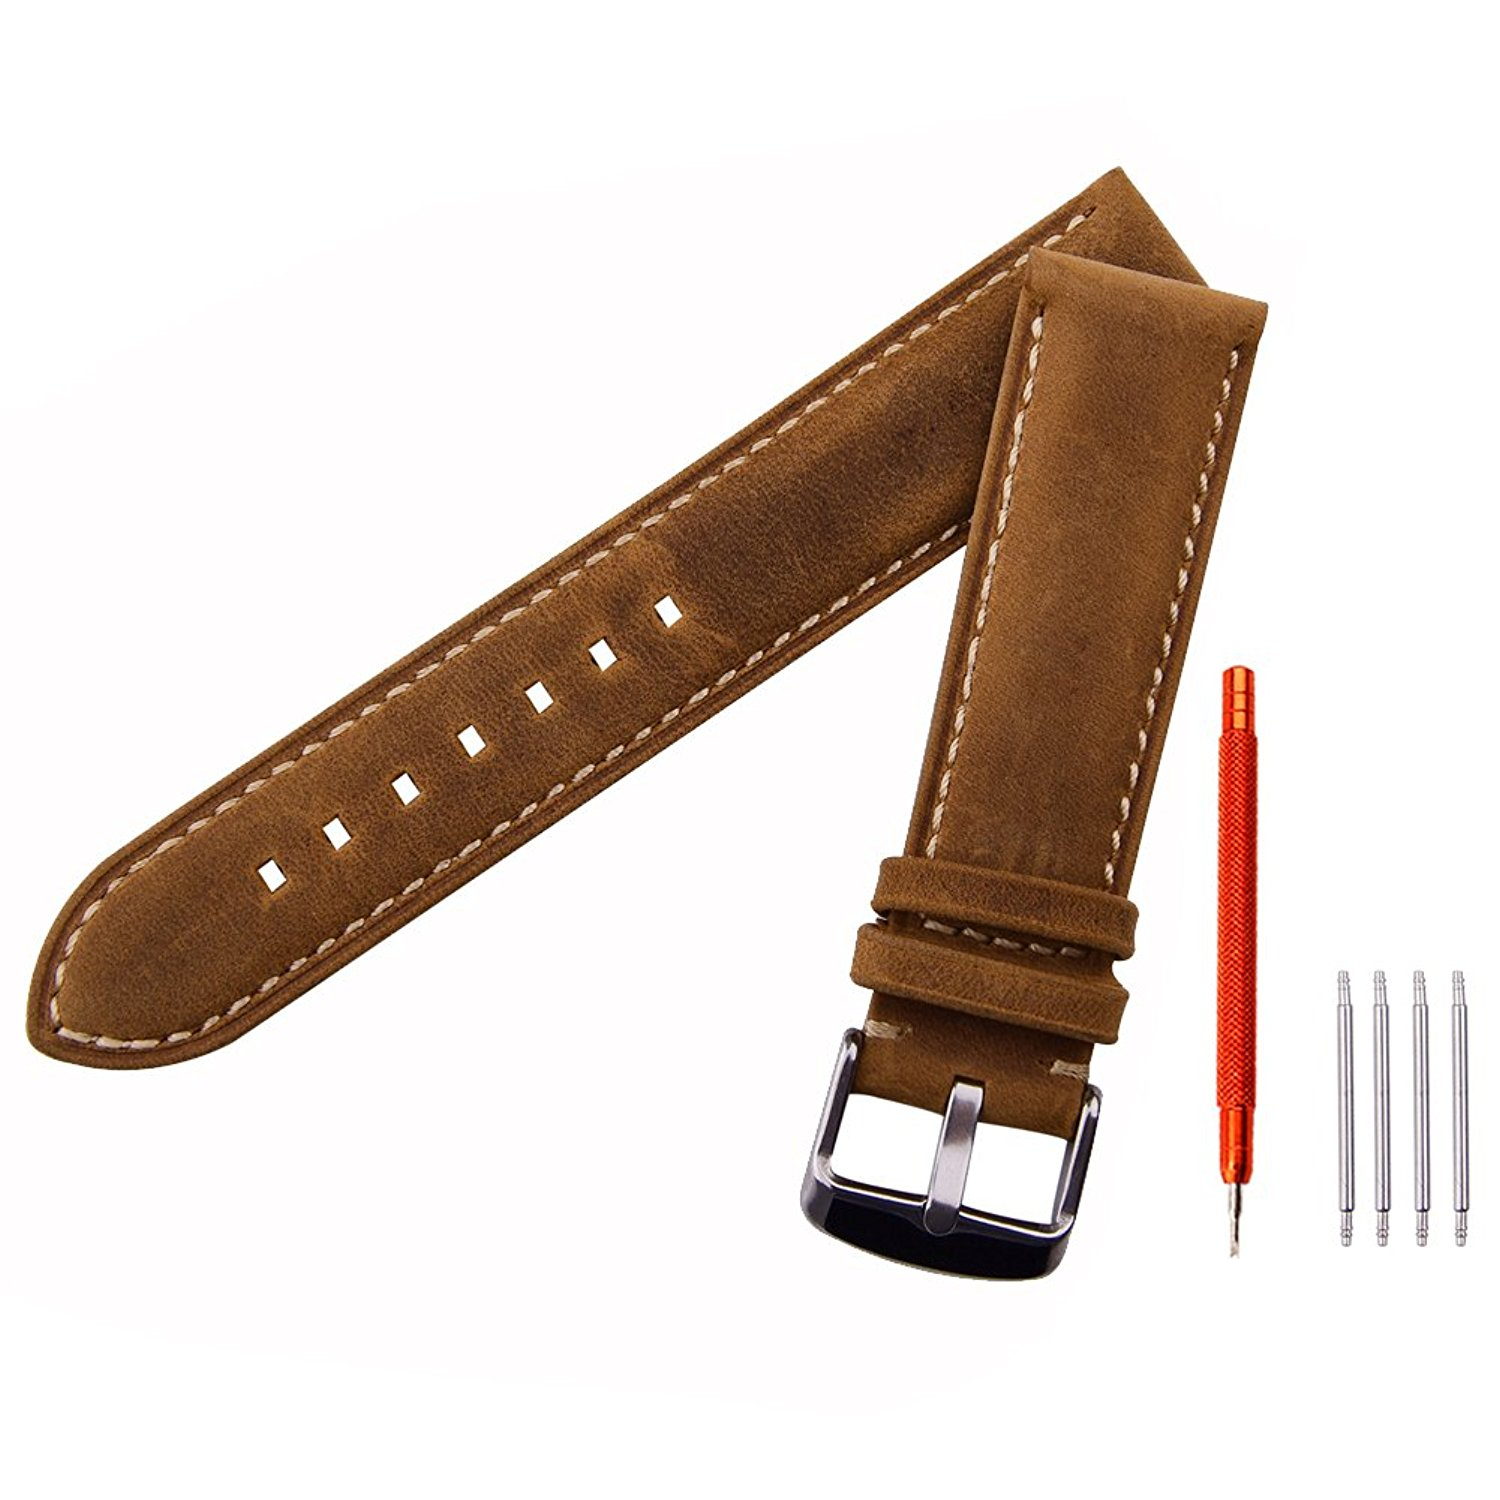 Ritche Leather strap Replacement Watch Bands Straps 20mm-Brown ...